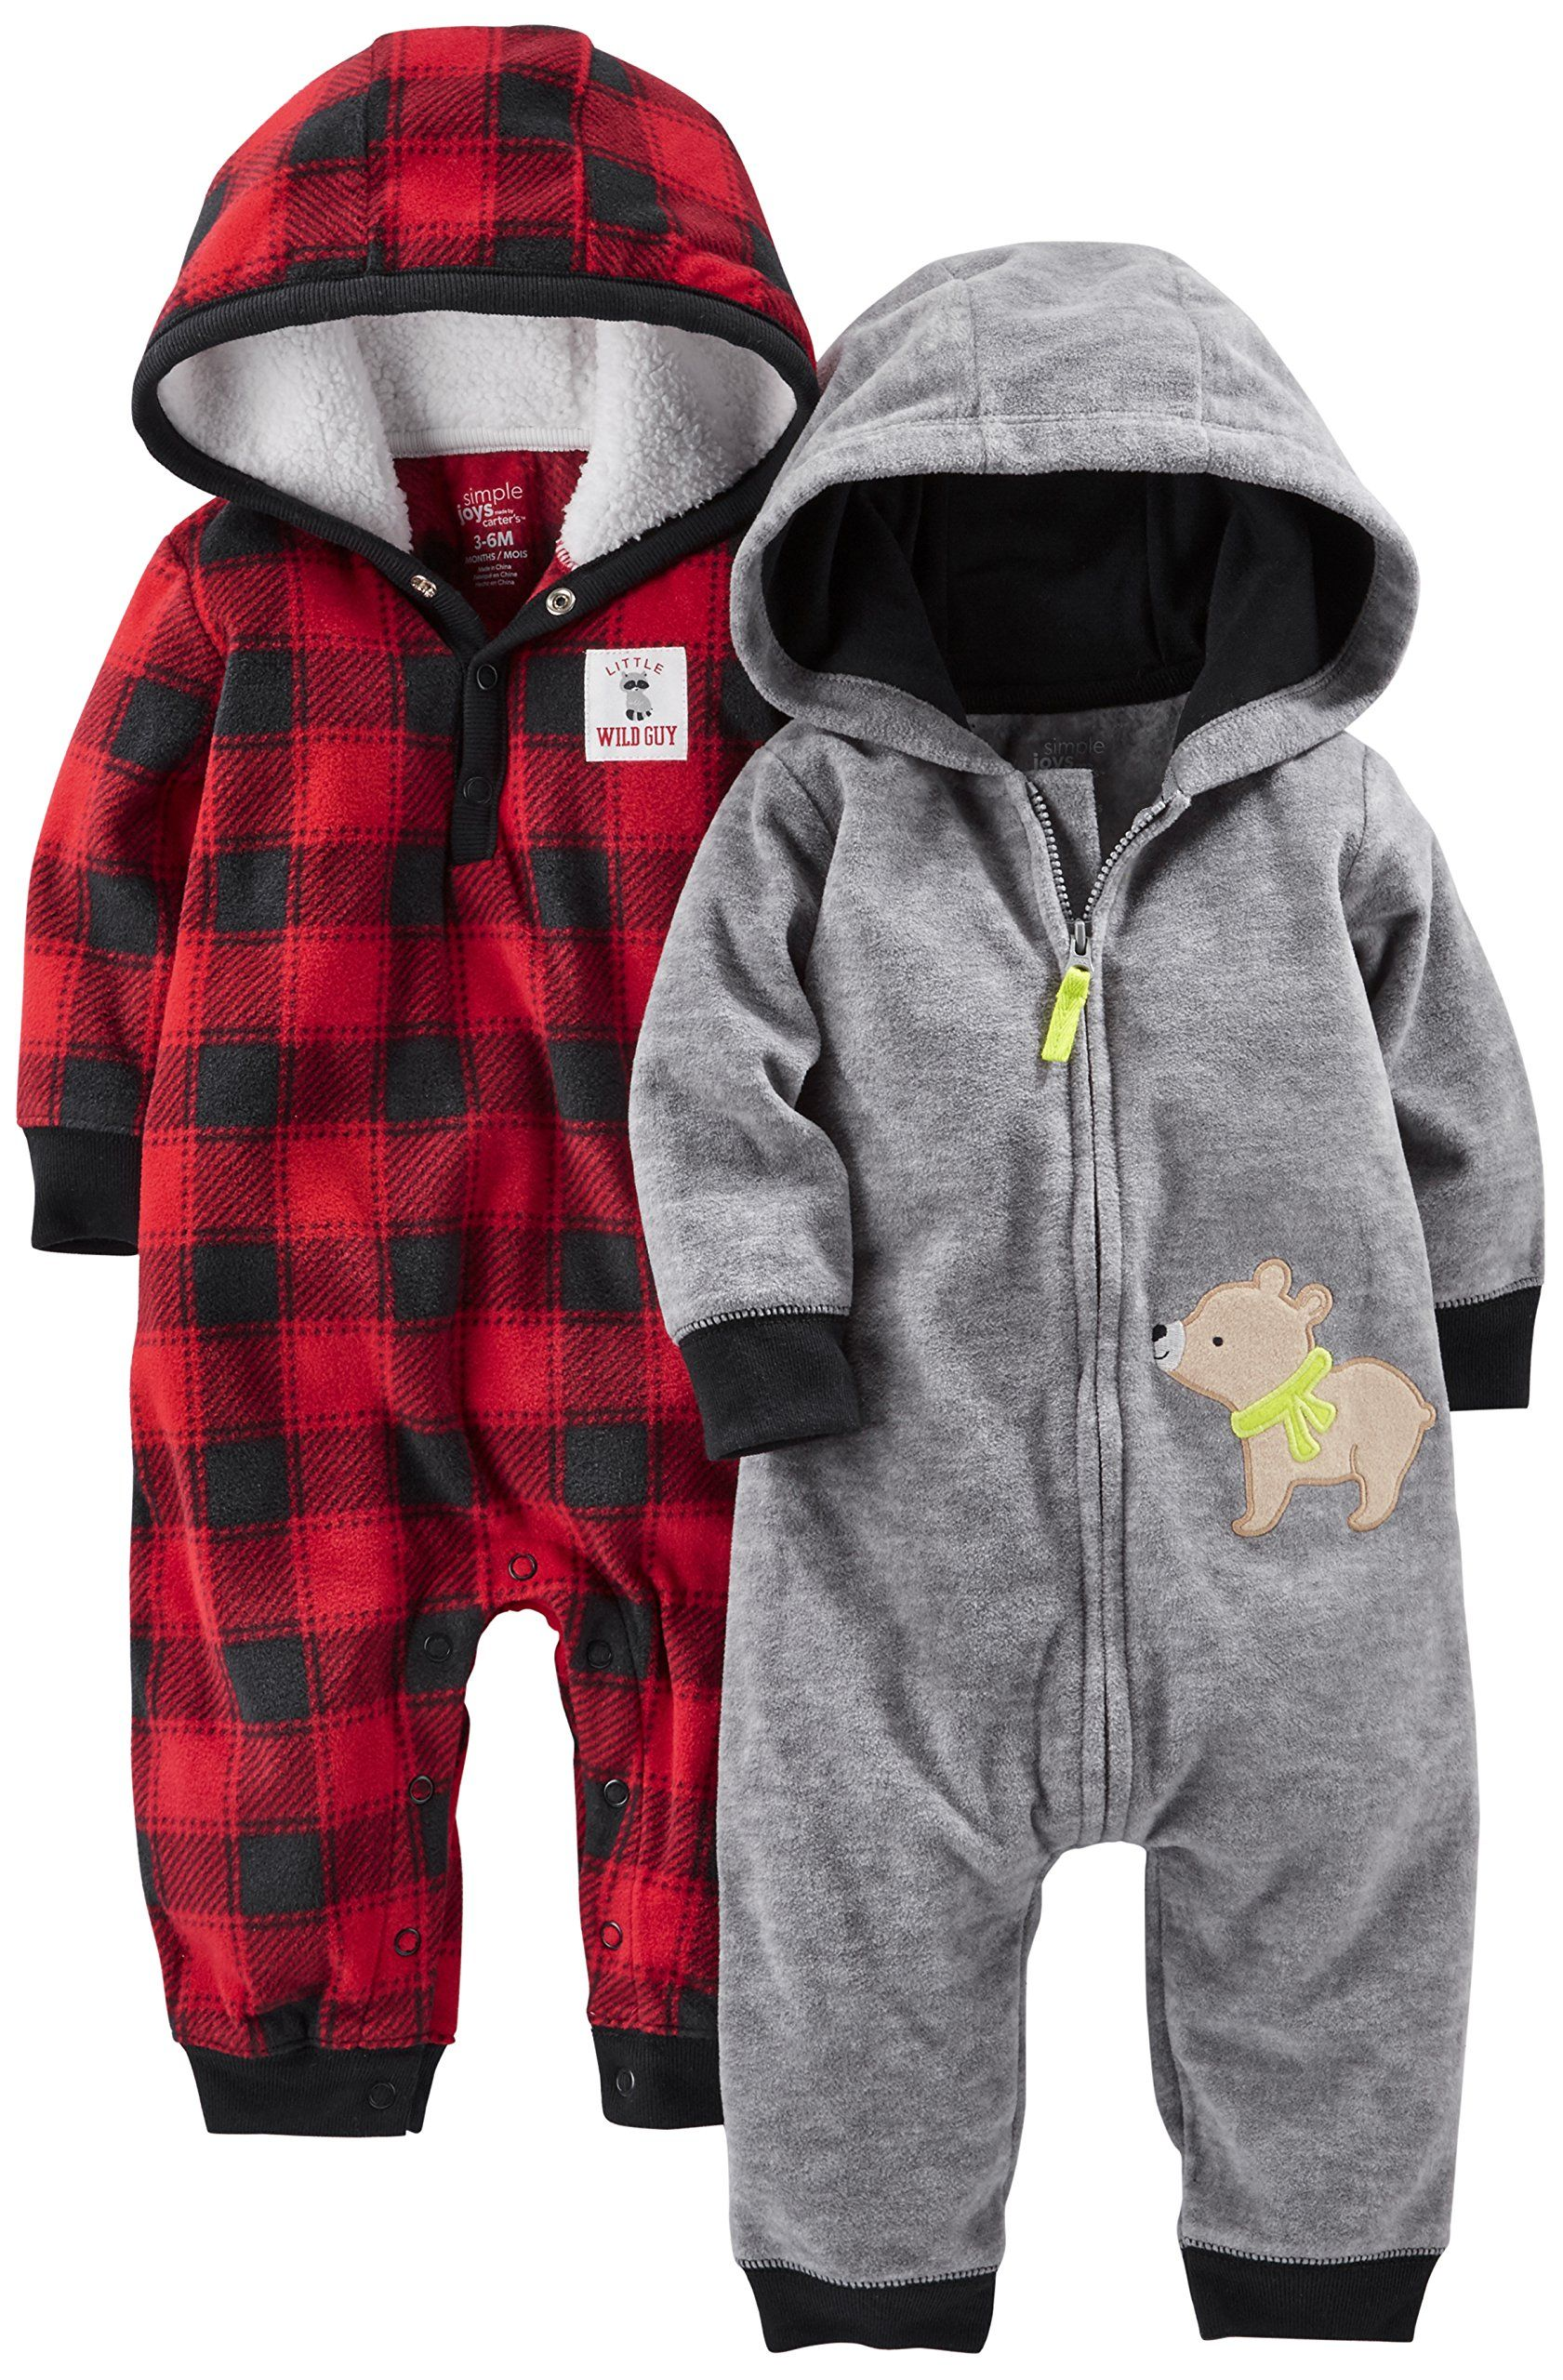 Infant-and-Toddler-Pants beb/és ni/ños Simple Joys by Carters 2-Pack Pull On Fleece Pants